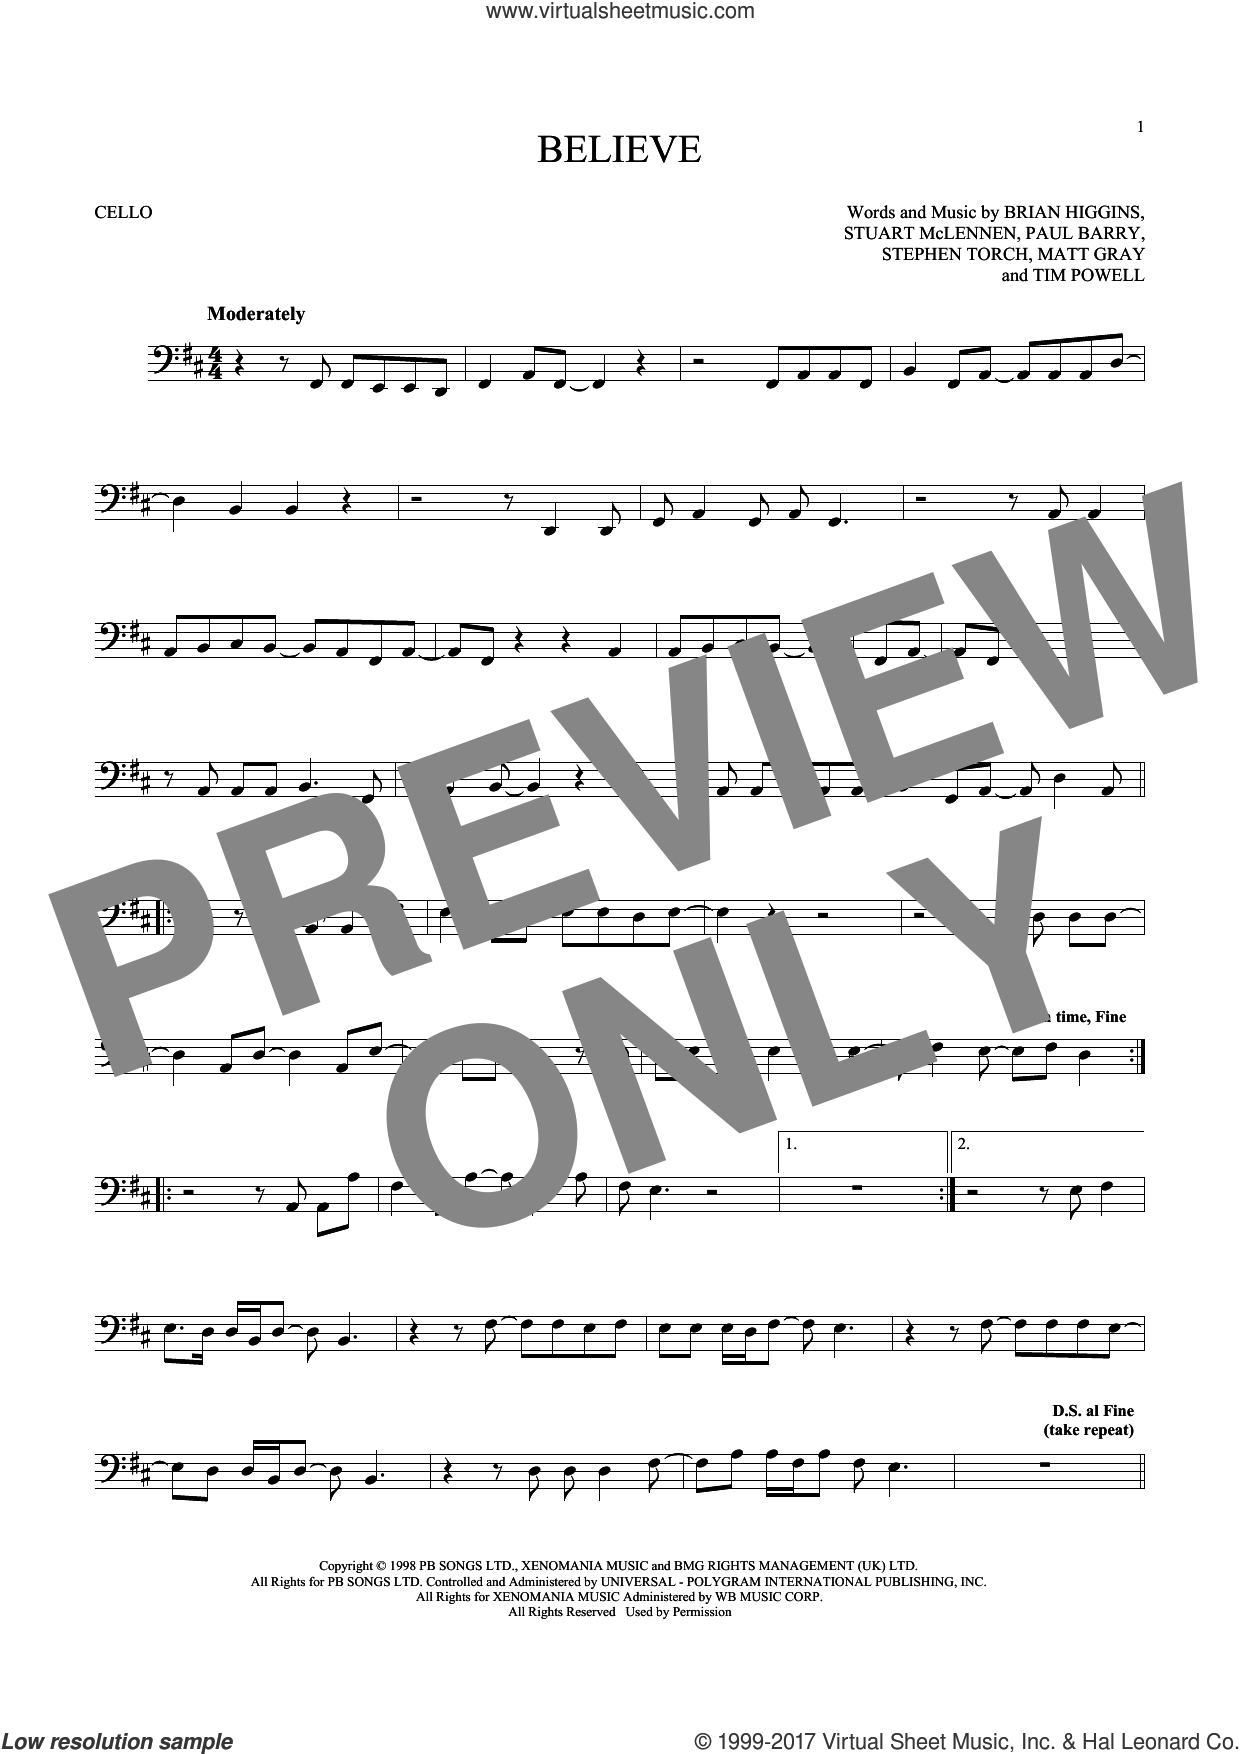 Believe sheet music for cello solo by Cher, Brian Higgins, Matt Gray, Paul Barry, Stephen Torch, Stuart McLennen and Timothy Powell, intermediate